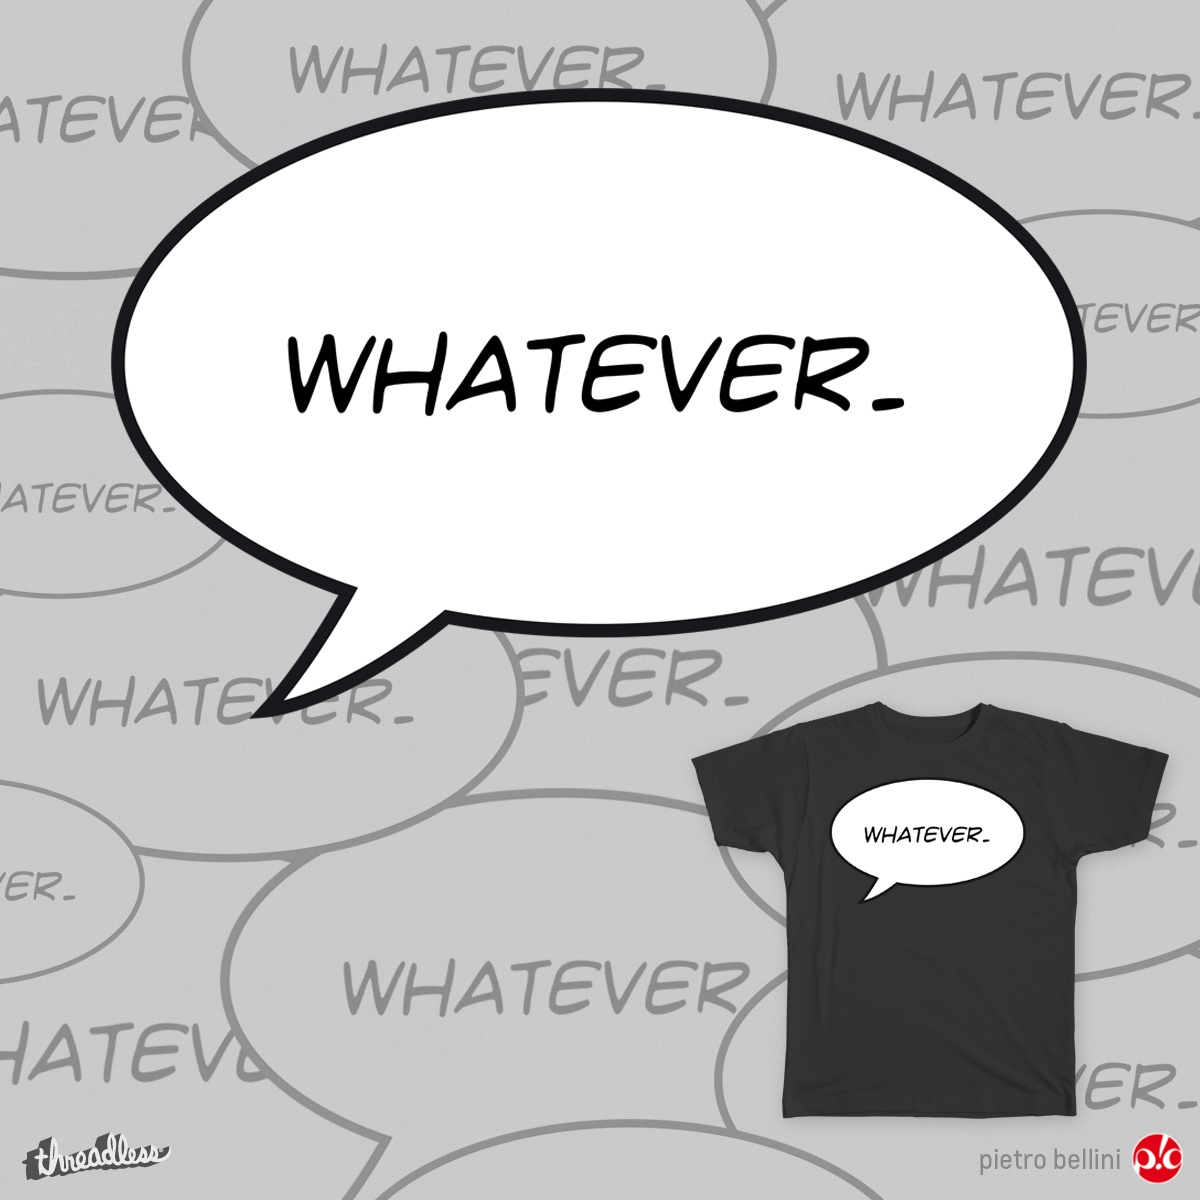 WHATEVER., a cool t-shirt design